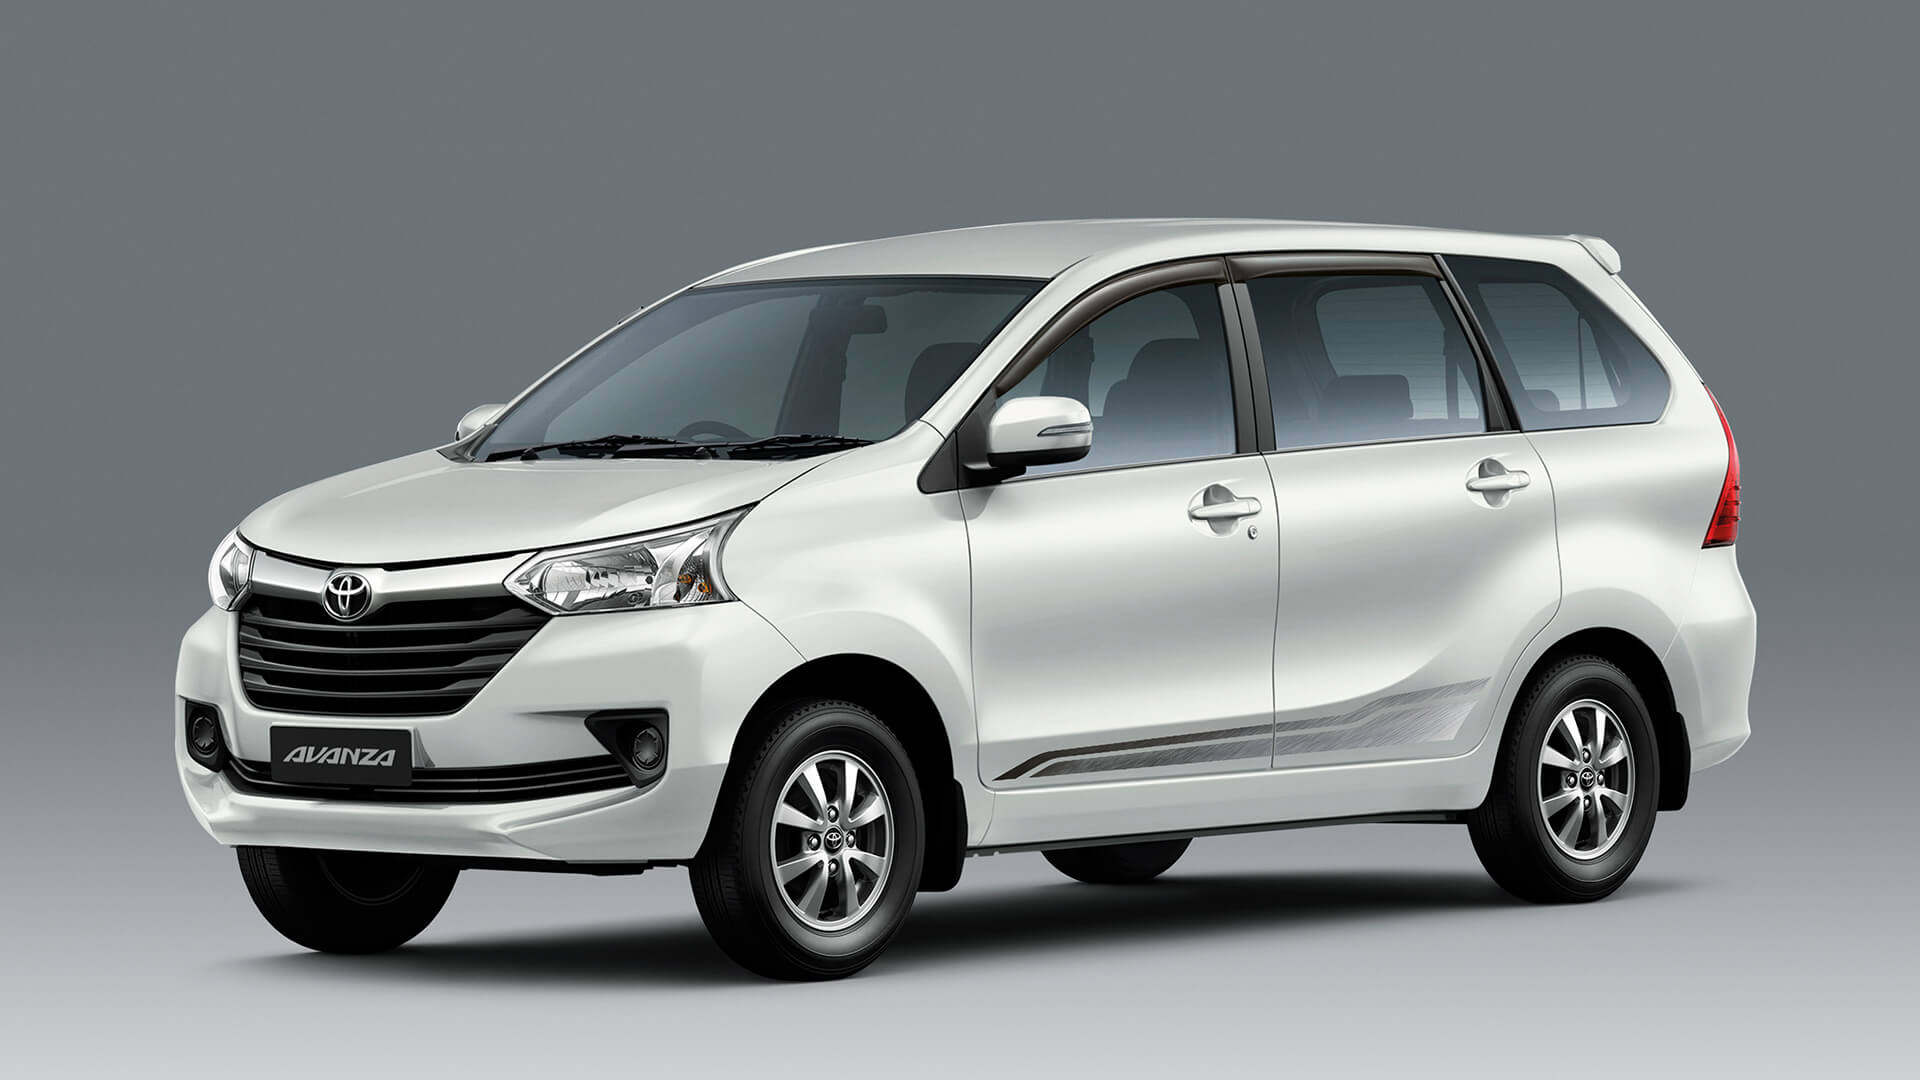 all new avanza veloz 2019 kijang innova toyota hd images and photos